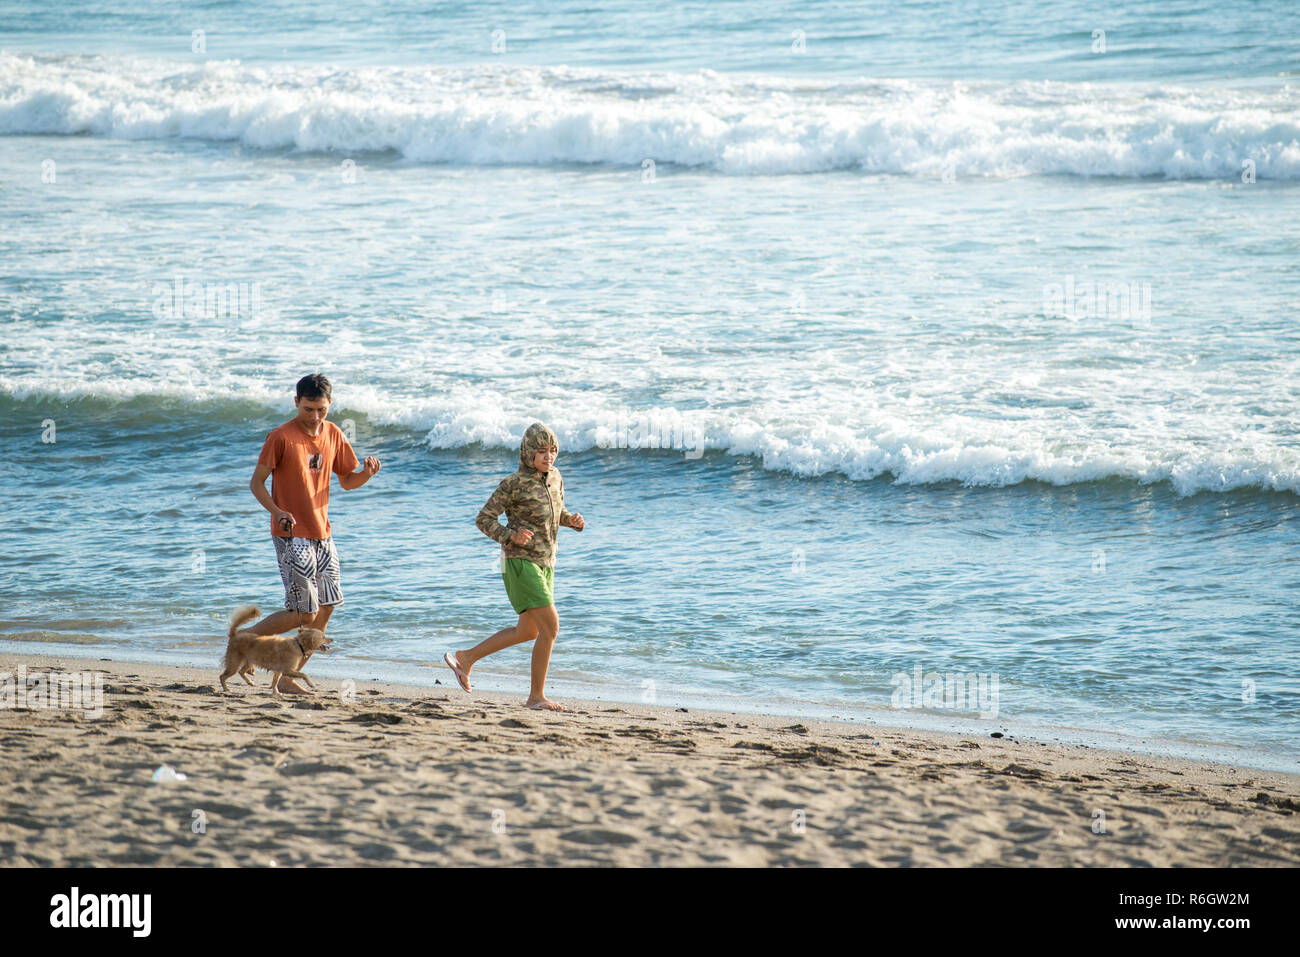 Tourists Enjoy A Bali Vacation Running On The Beach Bali Is Popular